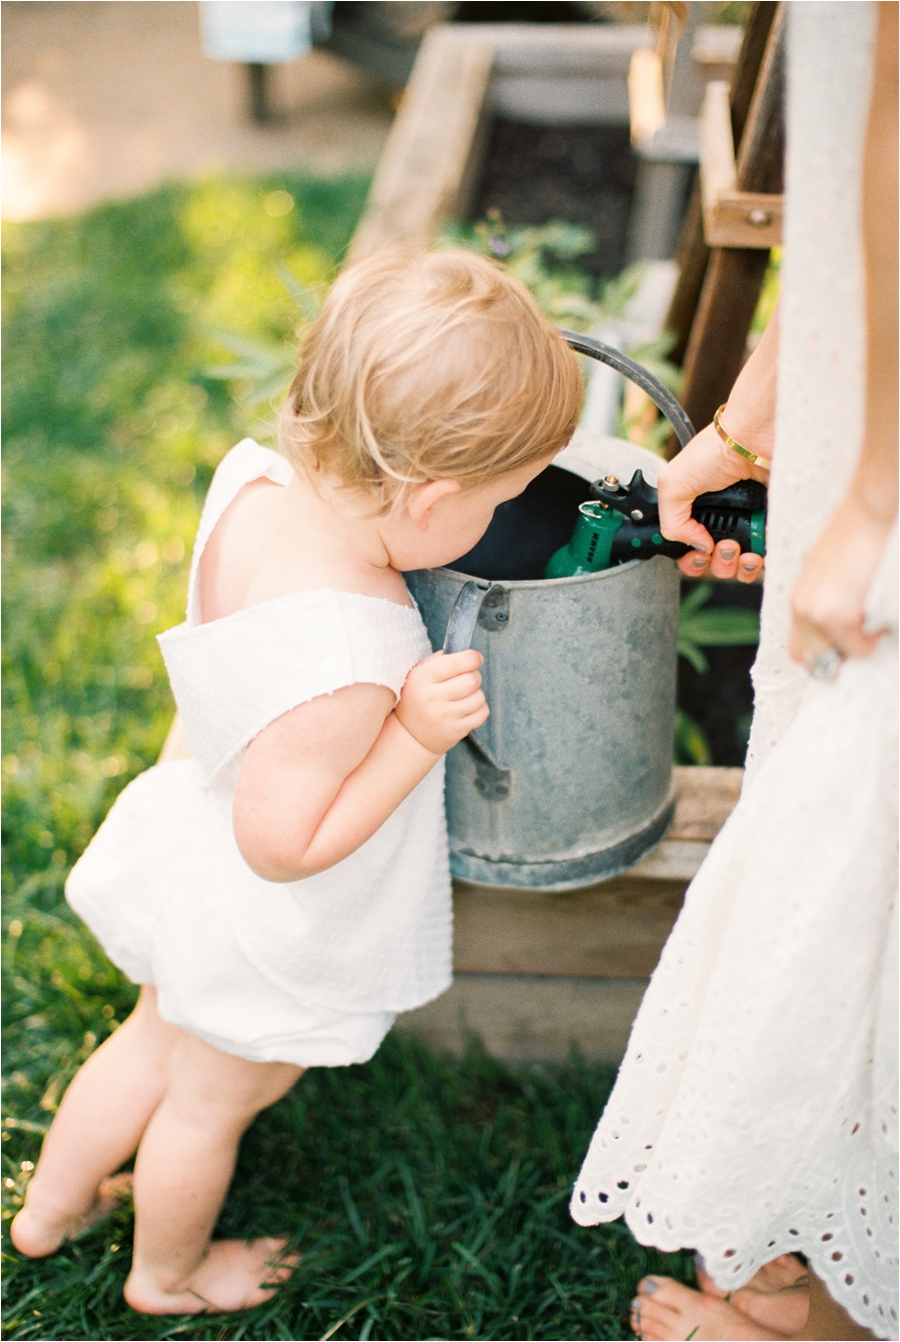 summer lifestyle family session in nashville by charlottesville family photographer, amy nicole photography_0068